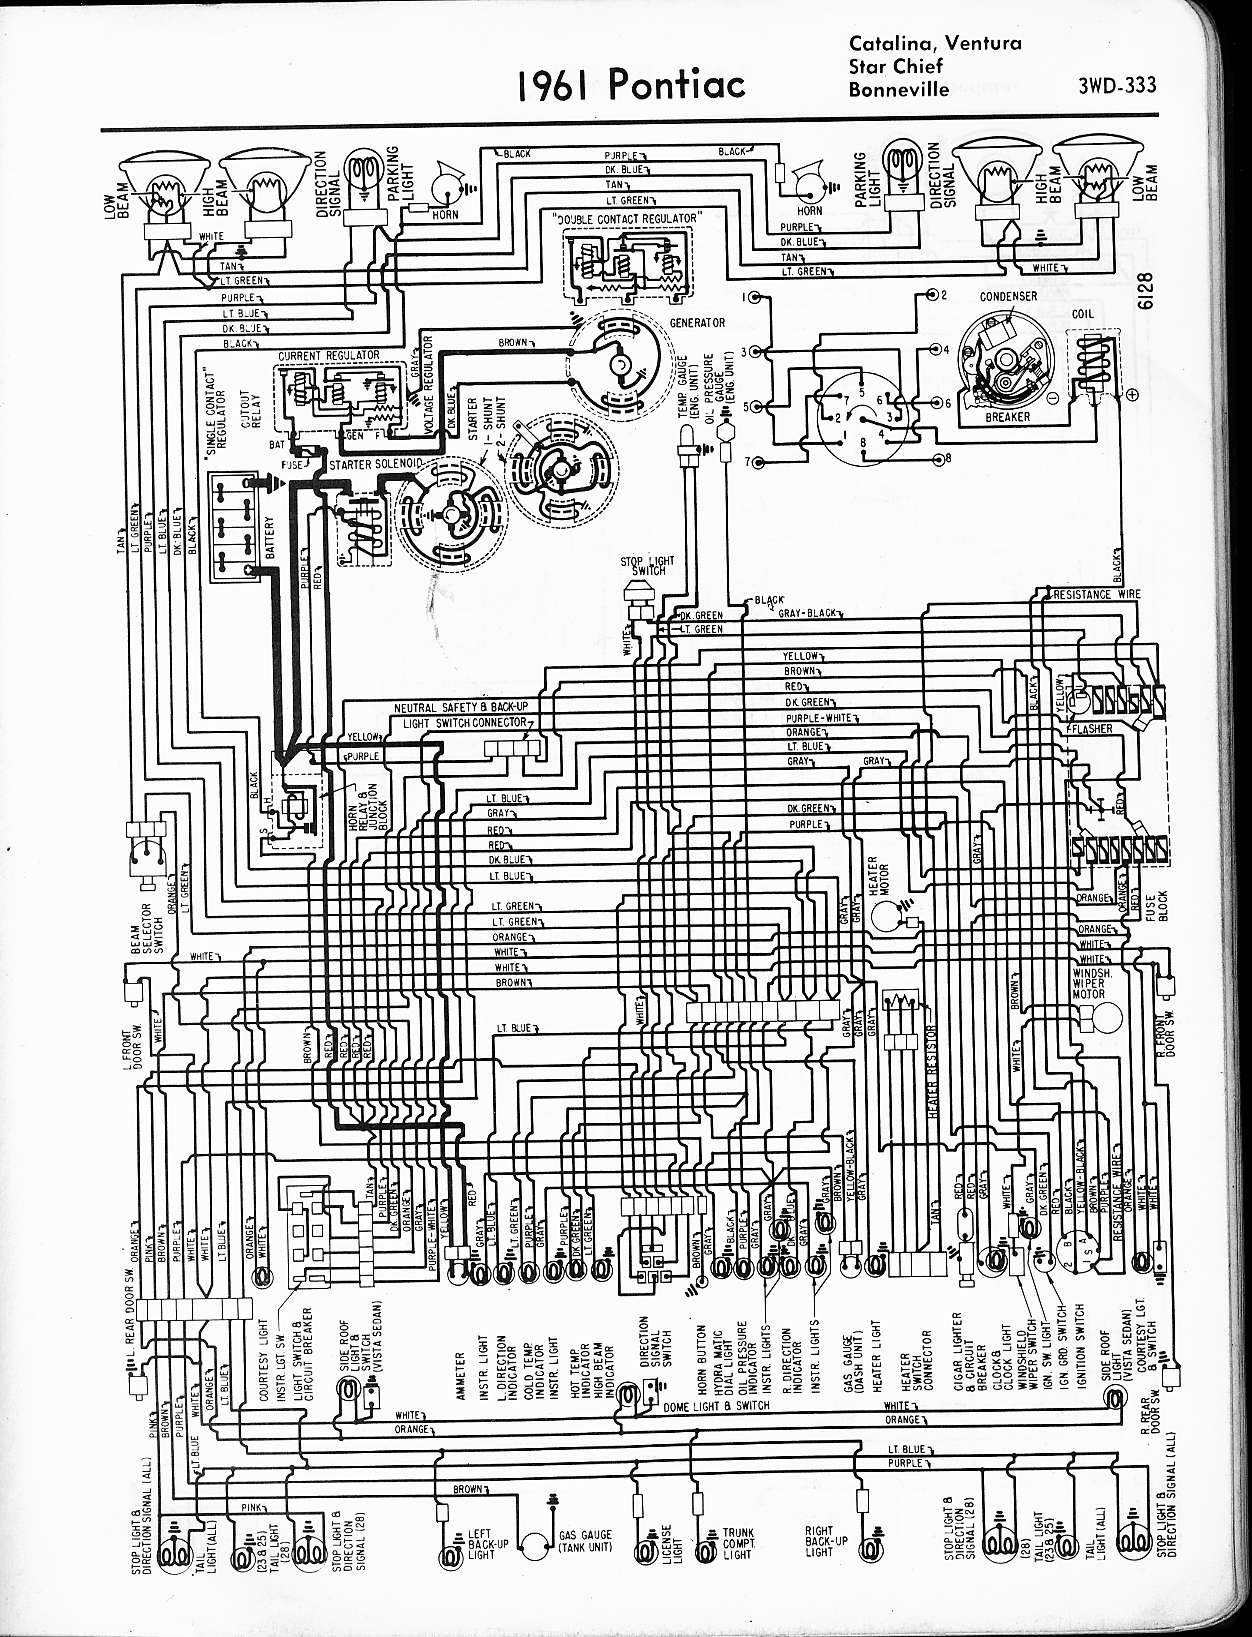 wiring diagram for pontiac bonneville wiring diagramWiring Diagrams Of 1965 Pontiac Catalina Star Chief Bonneville And Grand Prix Part 1 #4